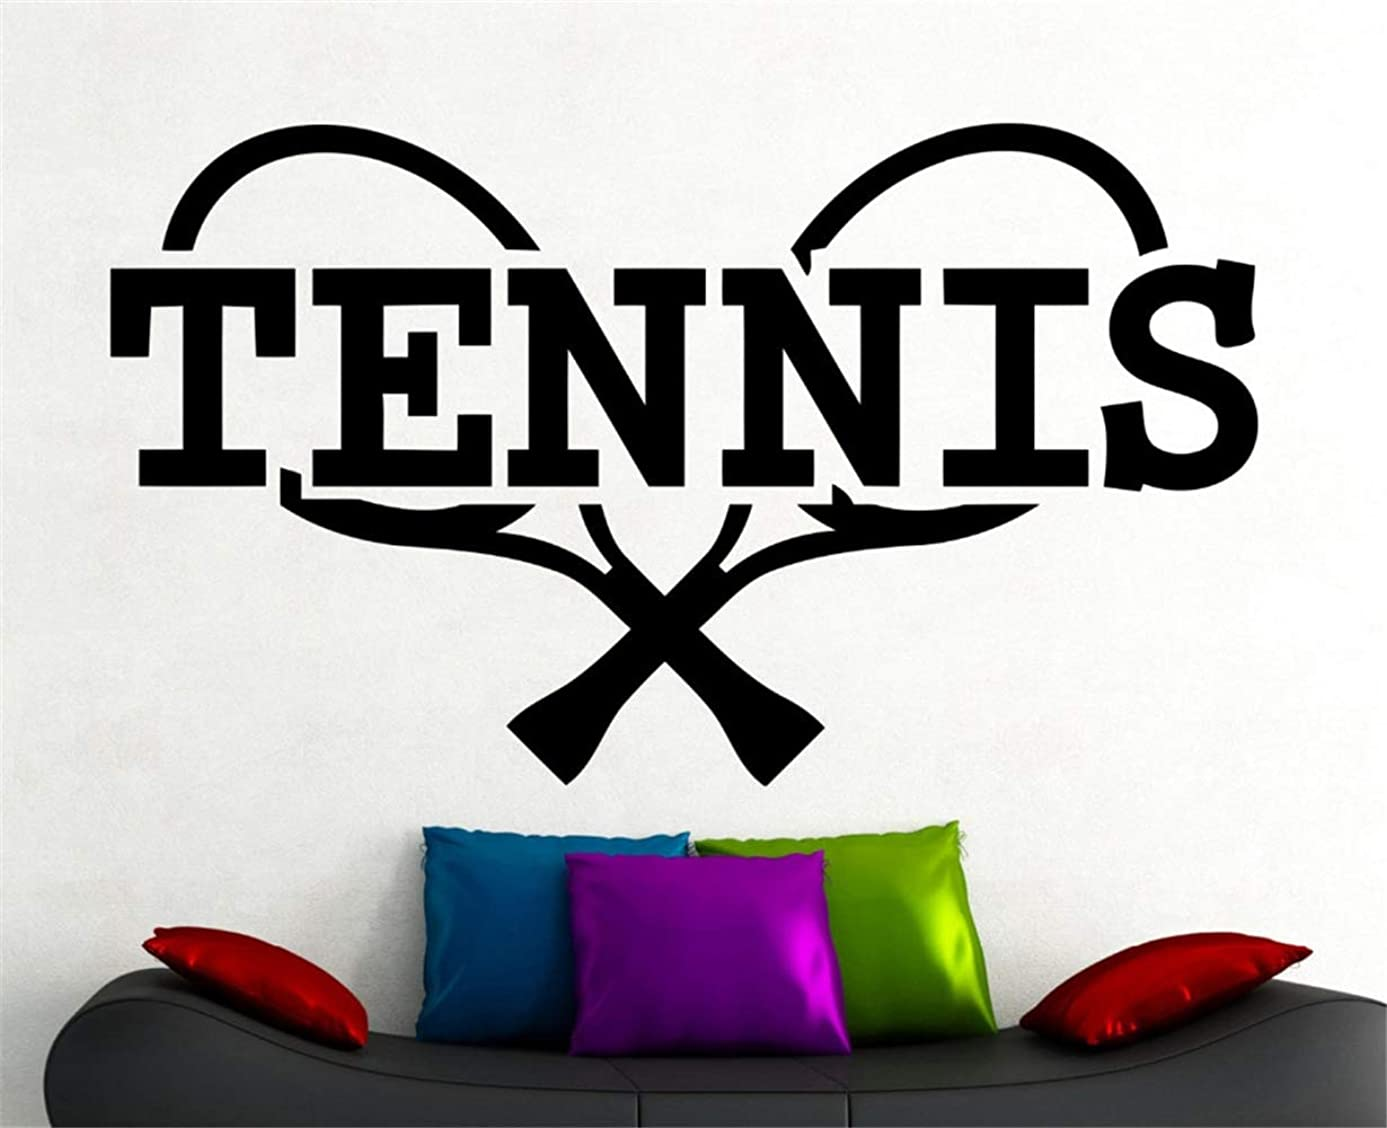 mauned Removable Vinyl Mural Decal Quotes Art Tennis Sports Logo Sticker Home Gym Decorations Bedroom Dorm Kids Room Décor